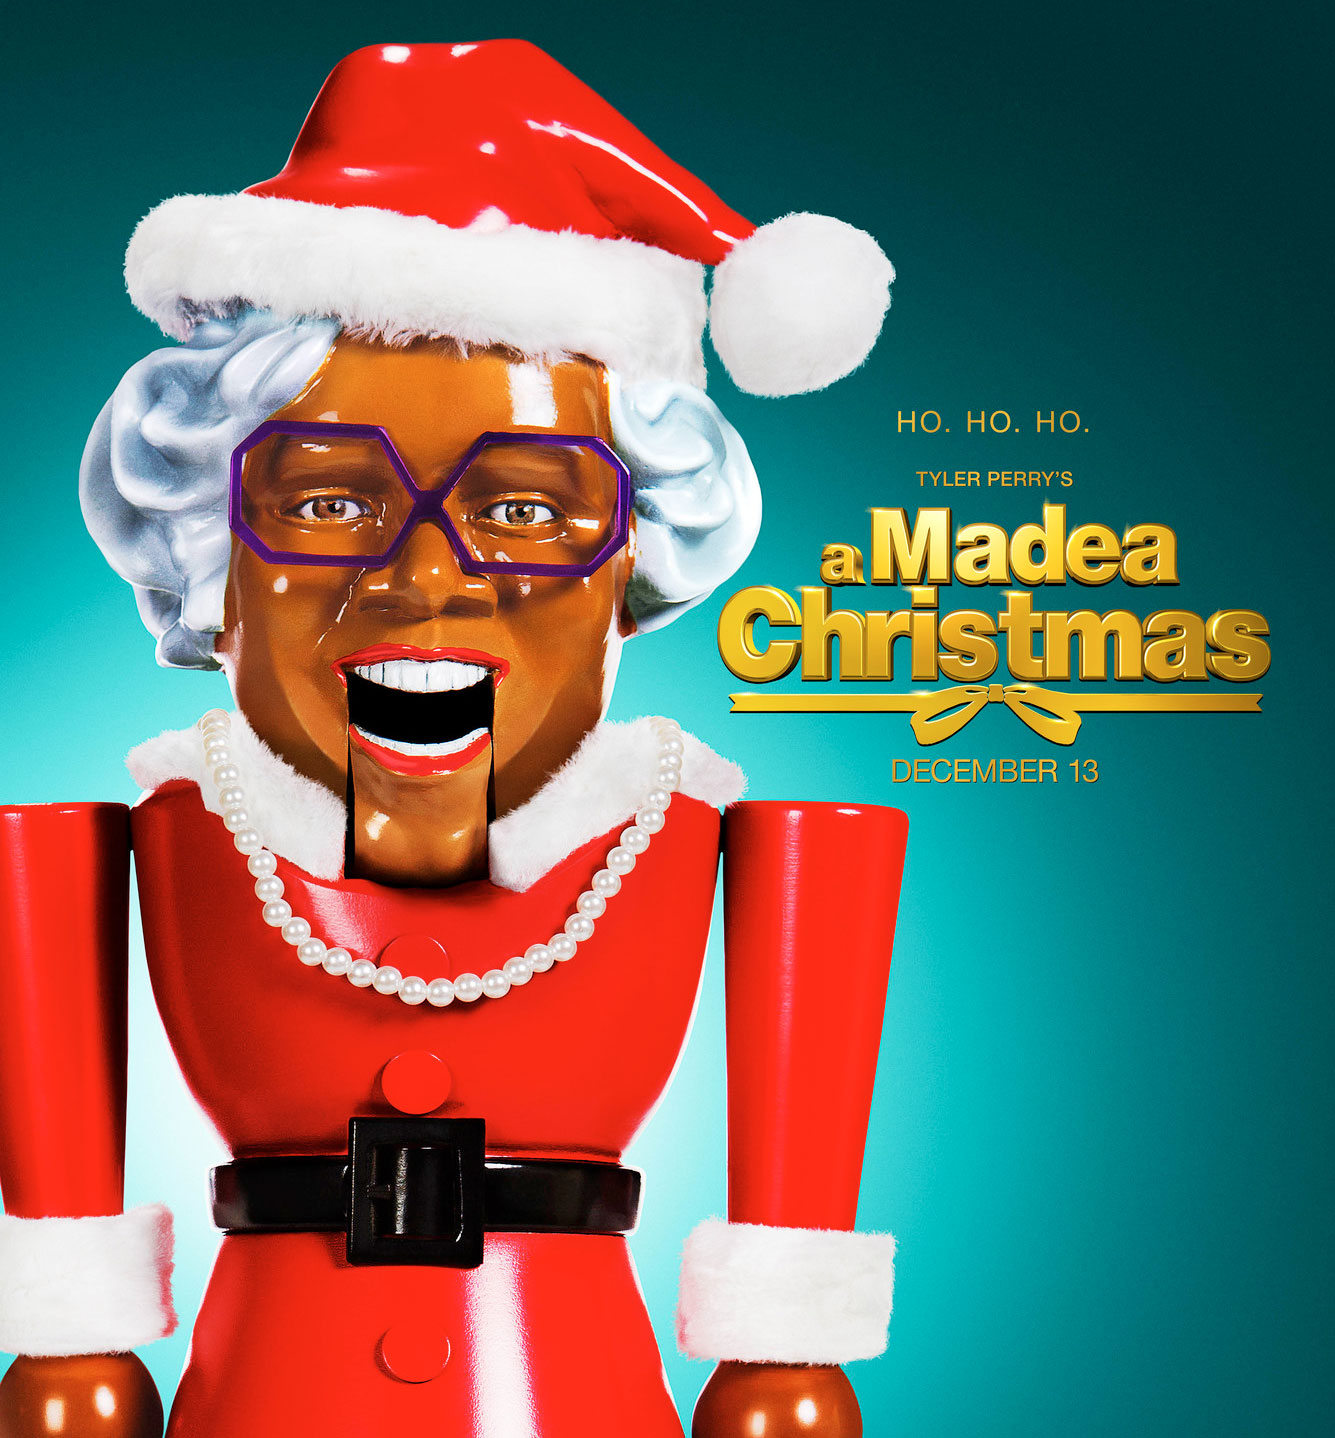 Exclusive Tyler Perry Does Christmas In A Madea